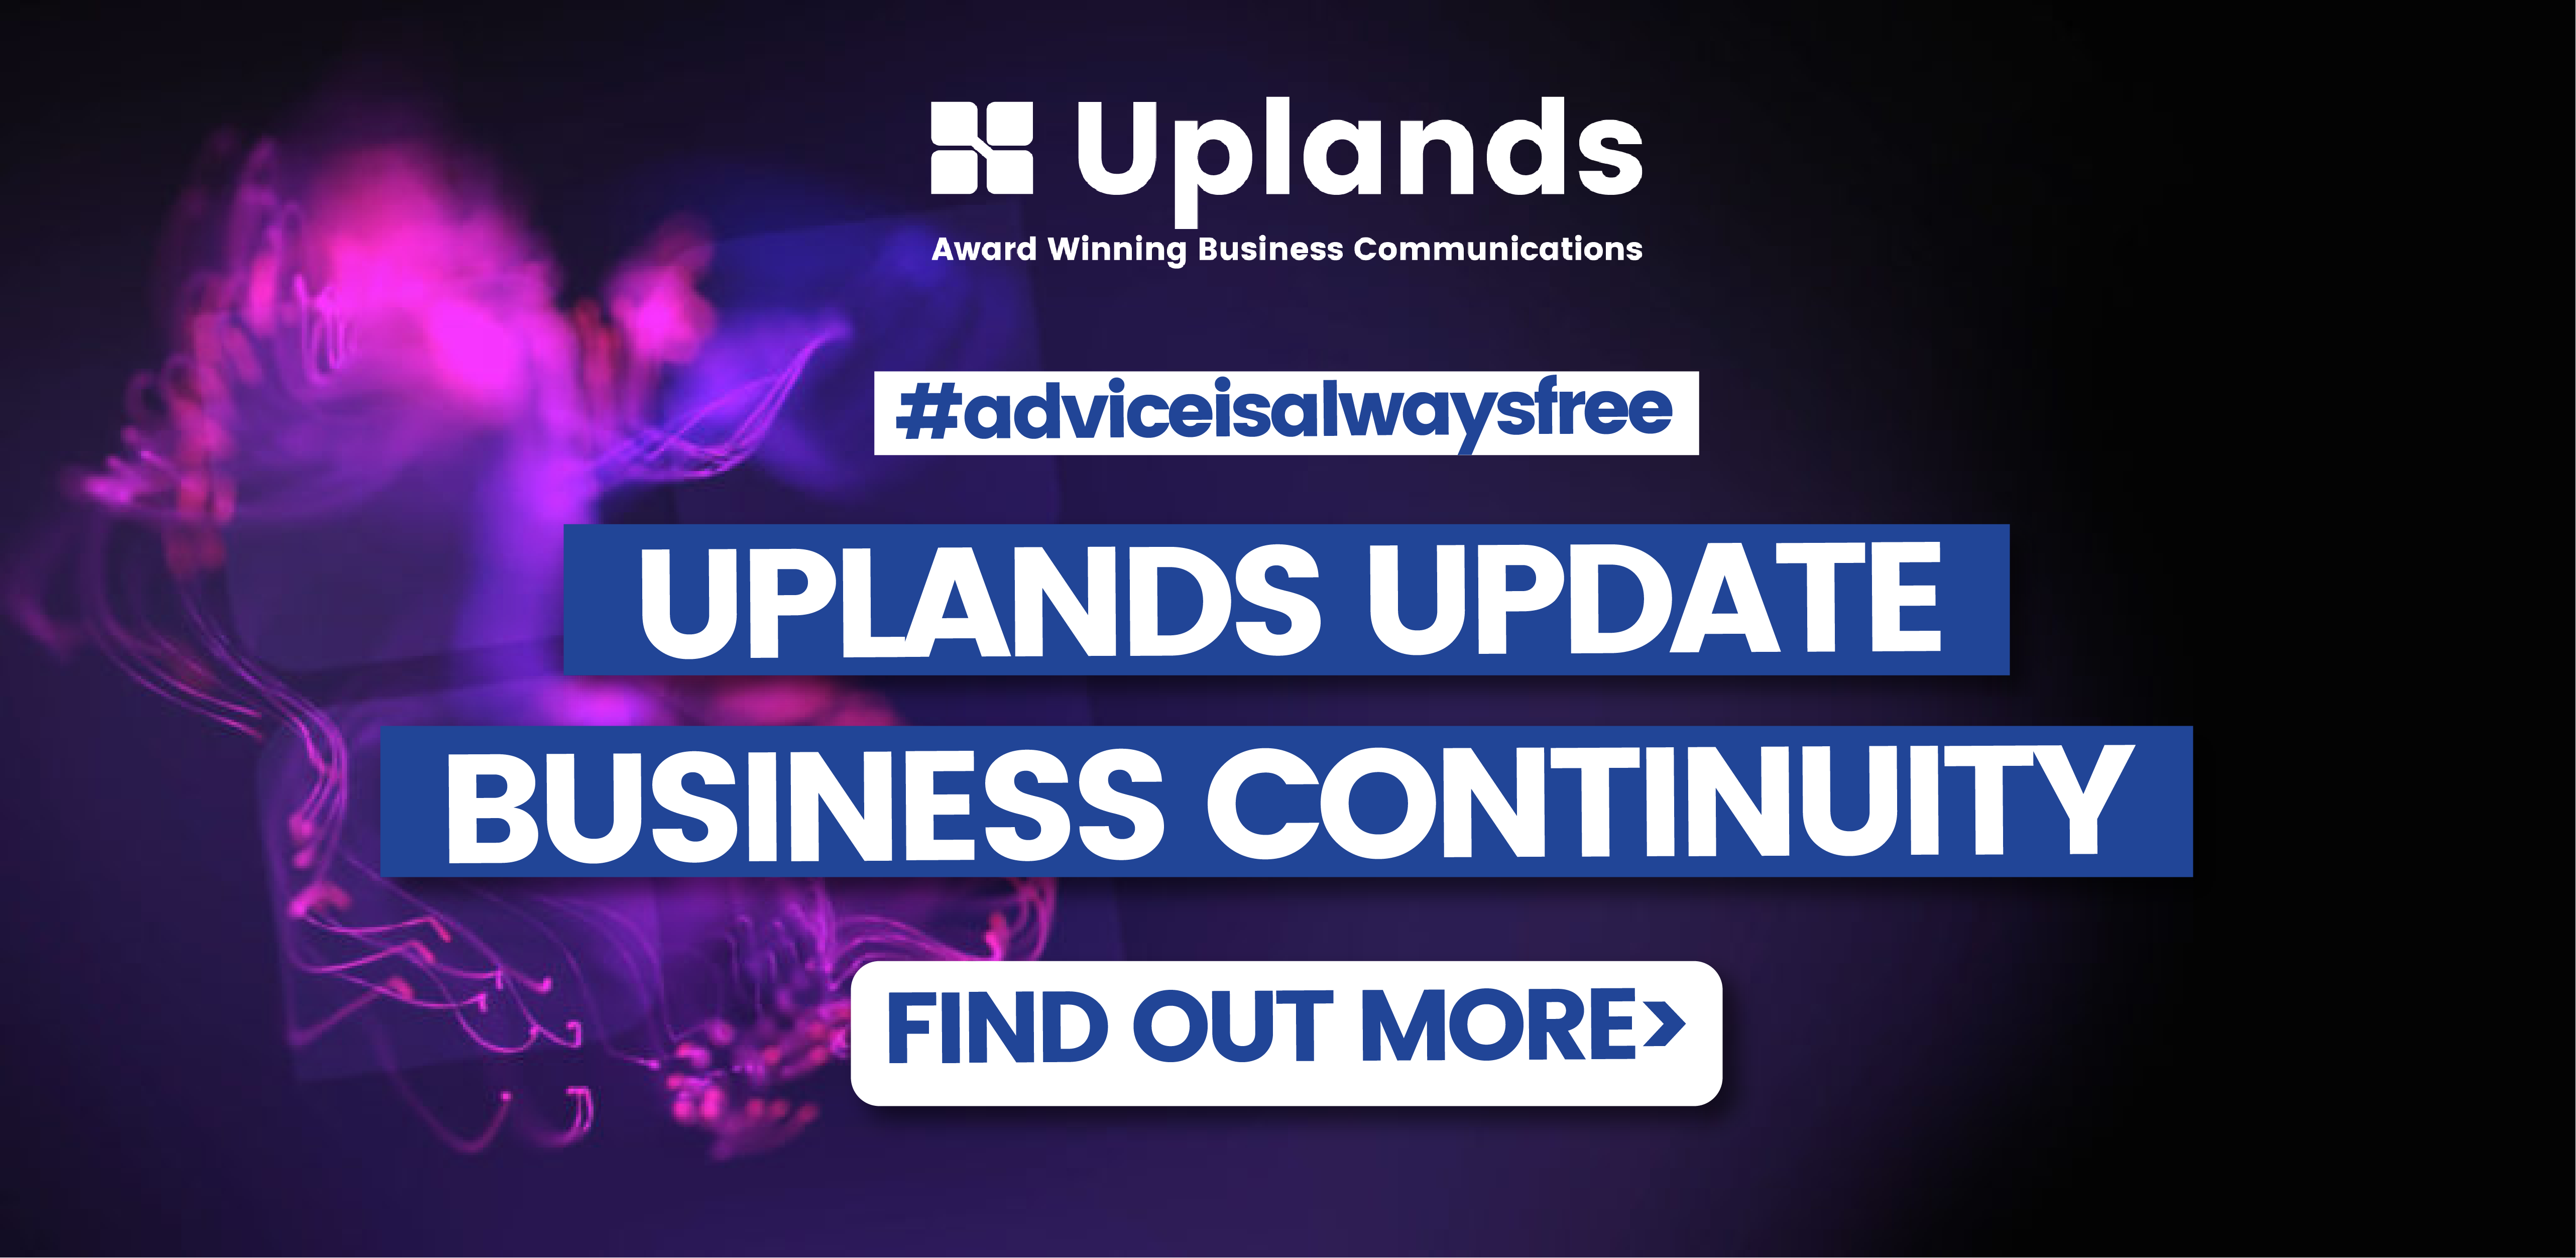 Uplands Update - Business Continuity - 25/03/2020